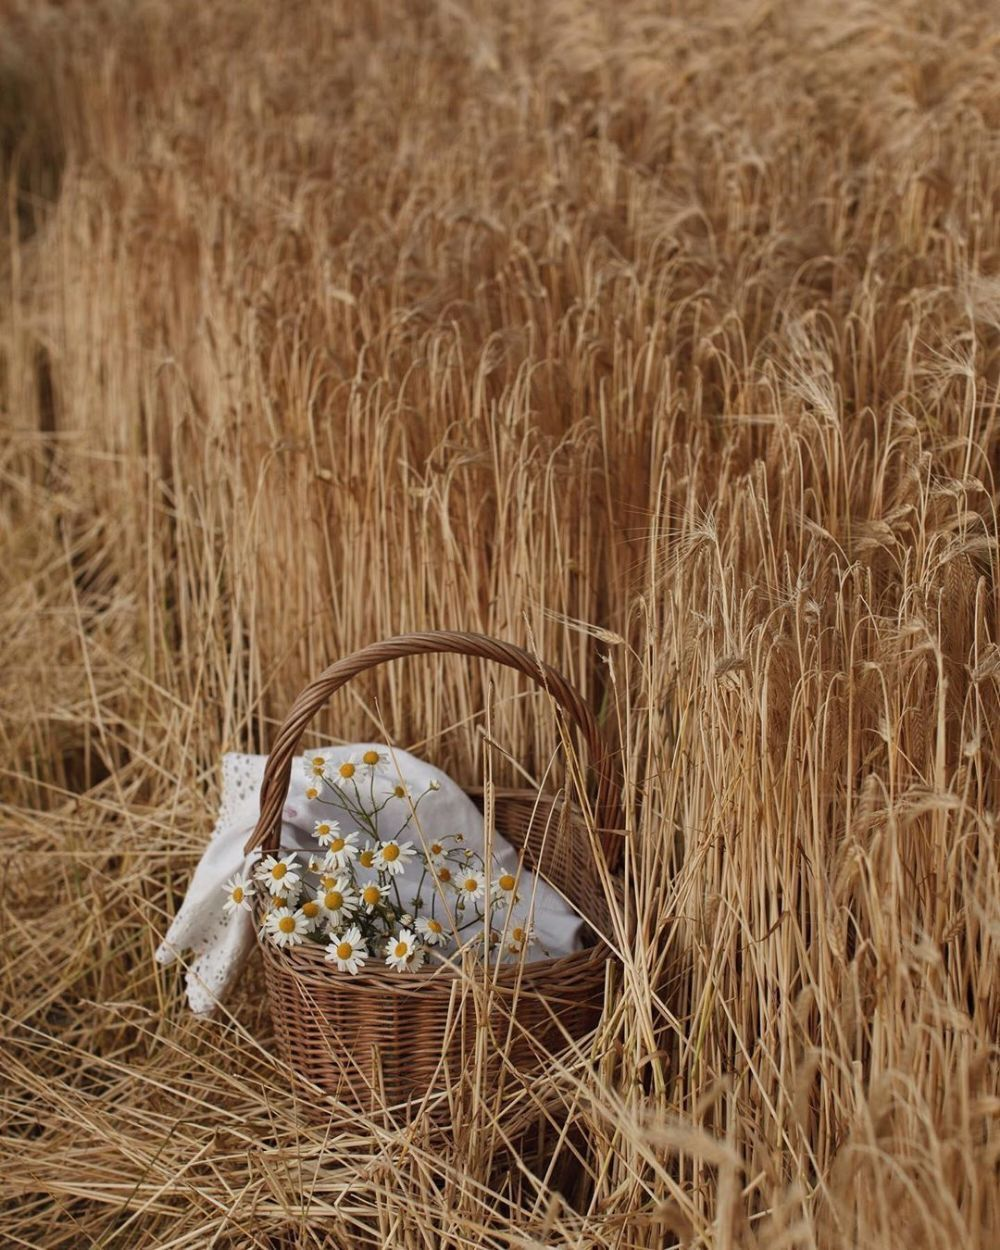 Pin by La Maison Naturaliste on A pin,a day,a story in